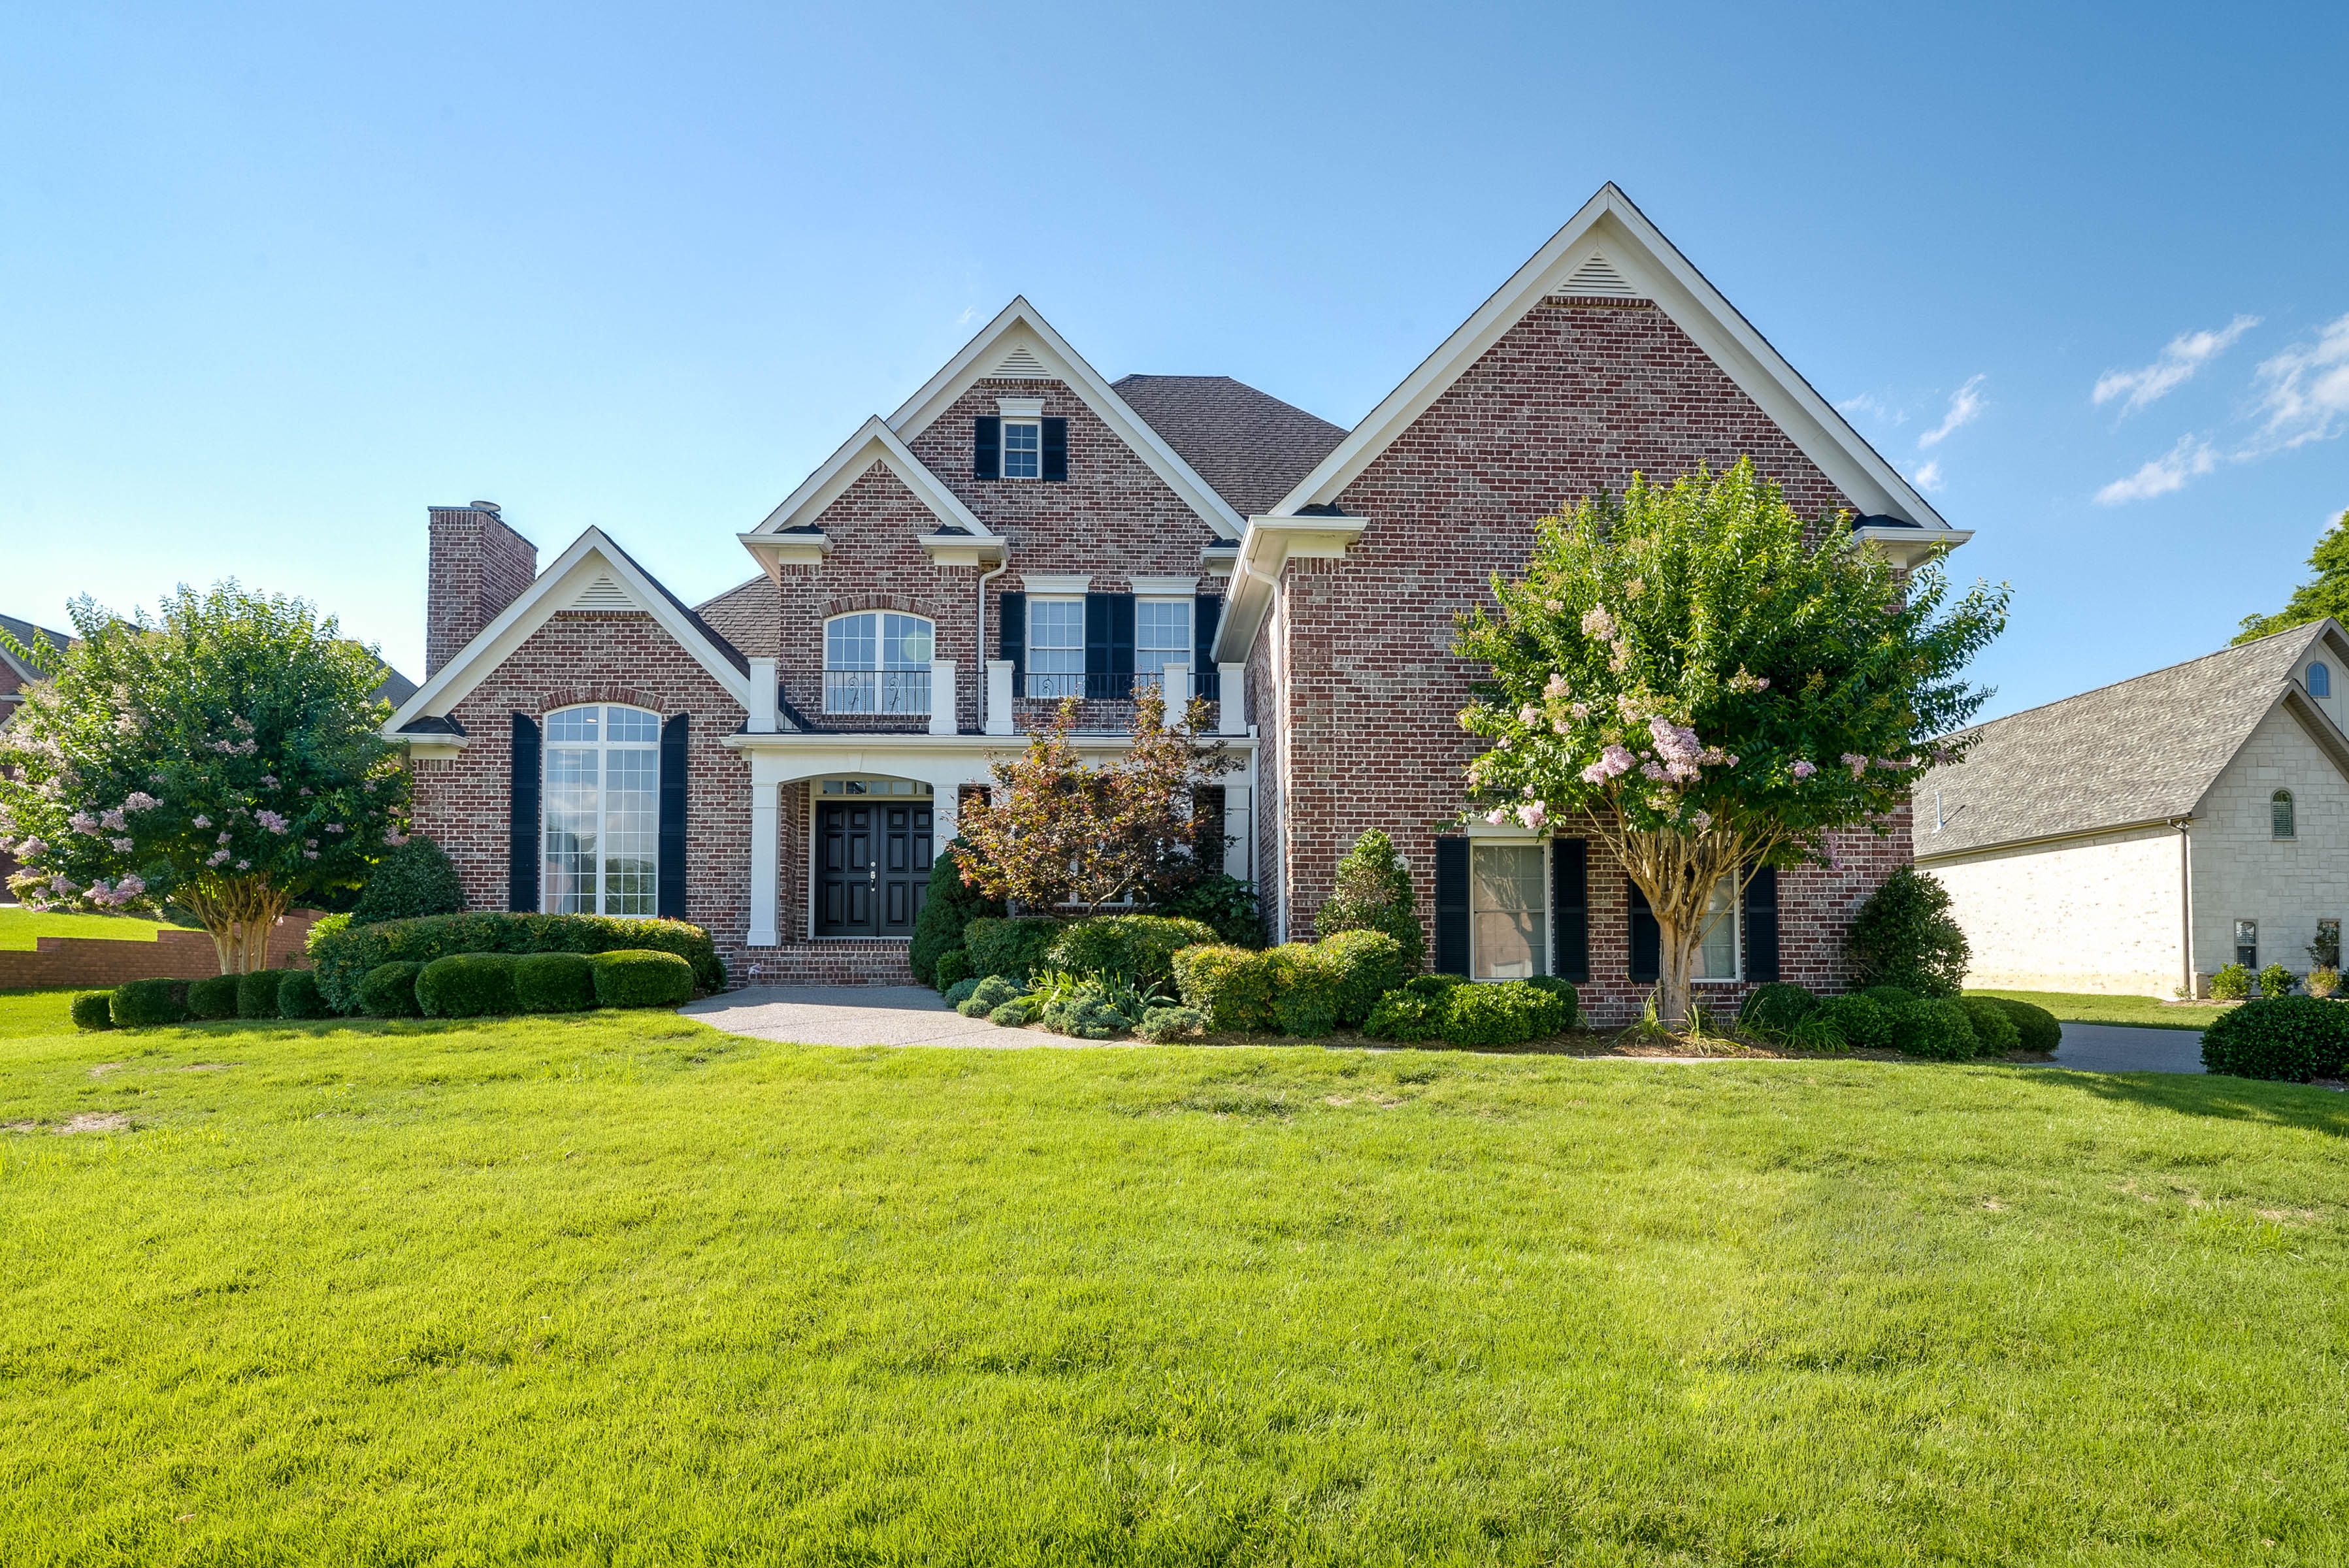 Lebanon, TN, House of the Week